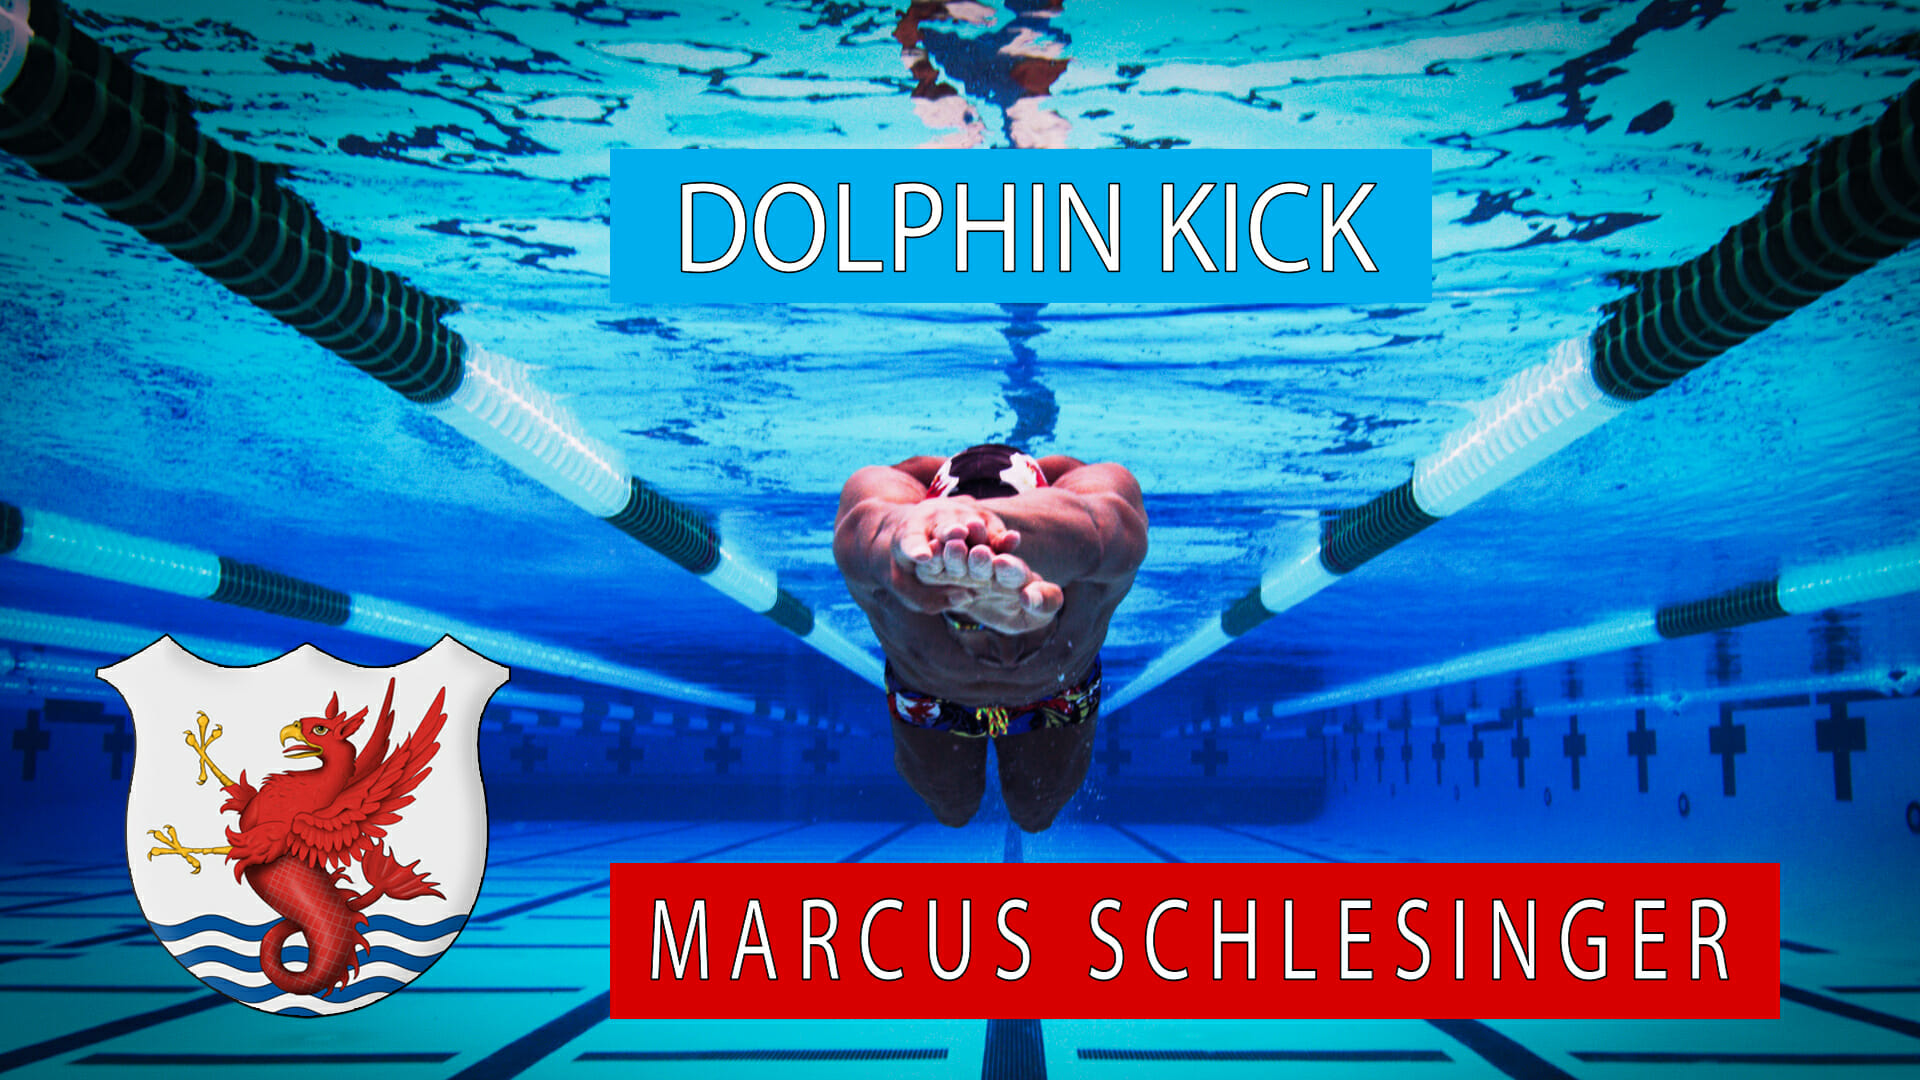 Dolphin Kick: Underwater Dolphin Kick Technique by Olympic